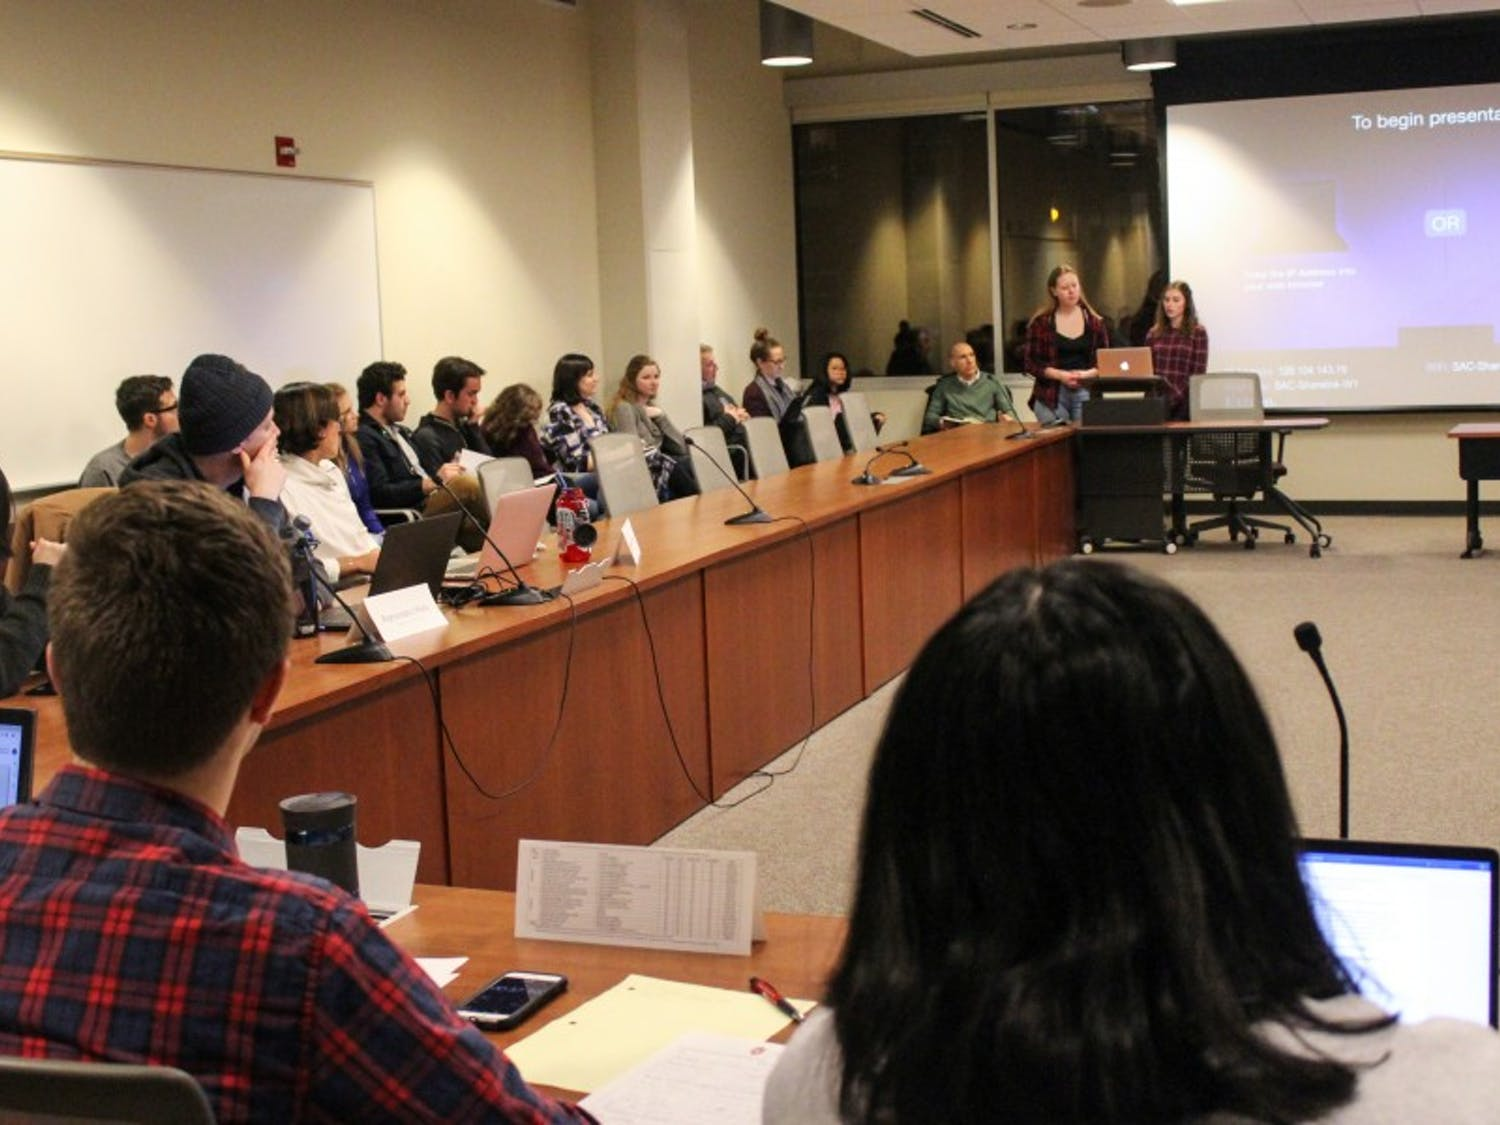 Many students attended the Student Services Finance Committee meeting to express their concern about the lack of funding for mental health services at UW.